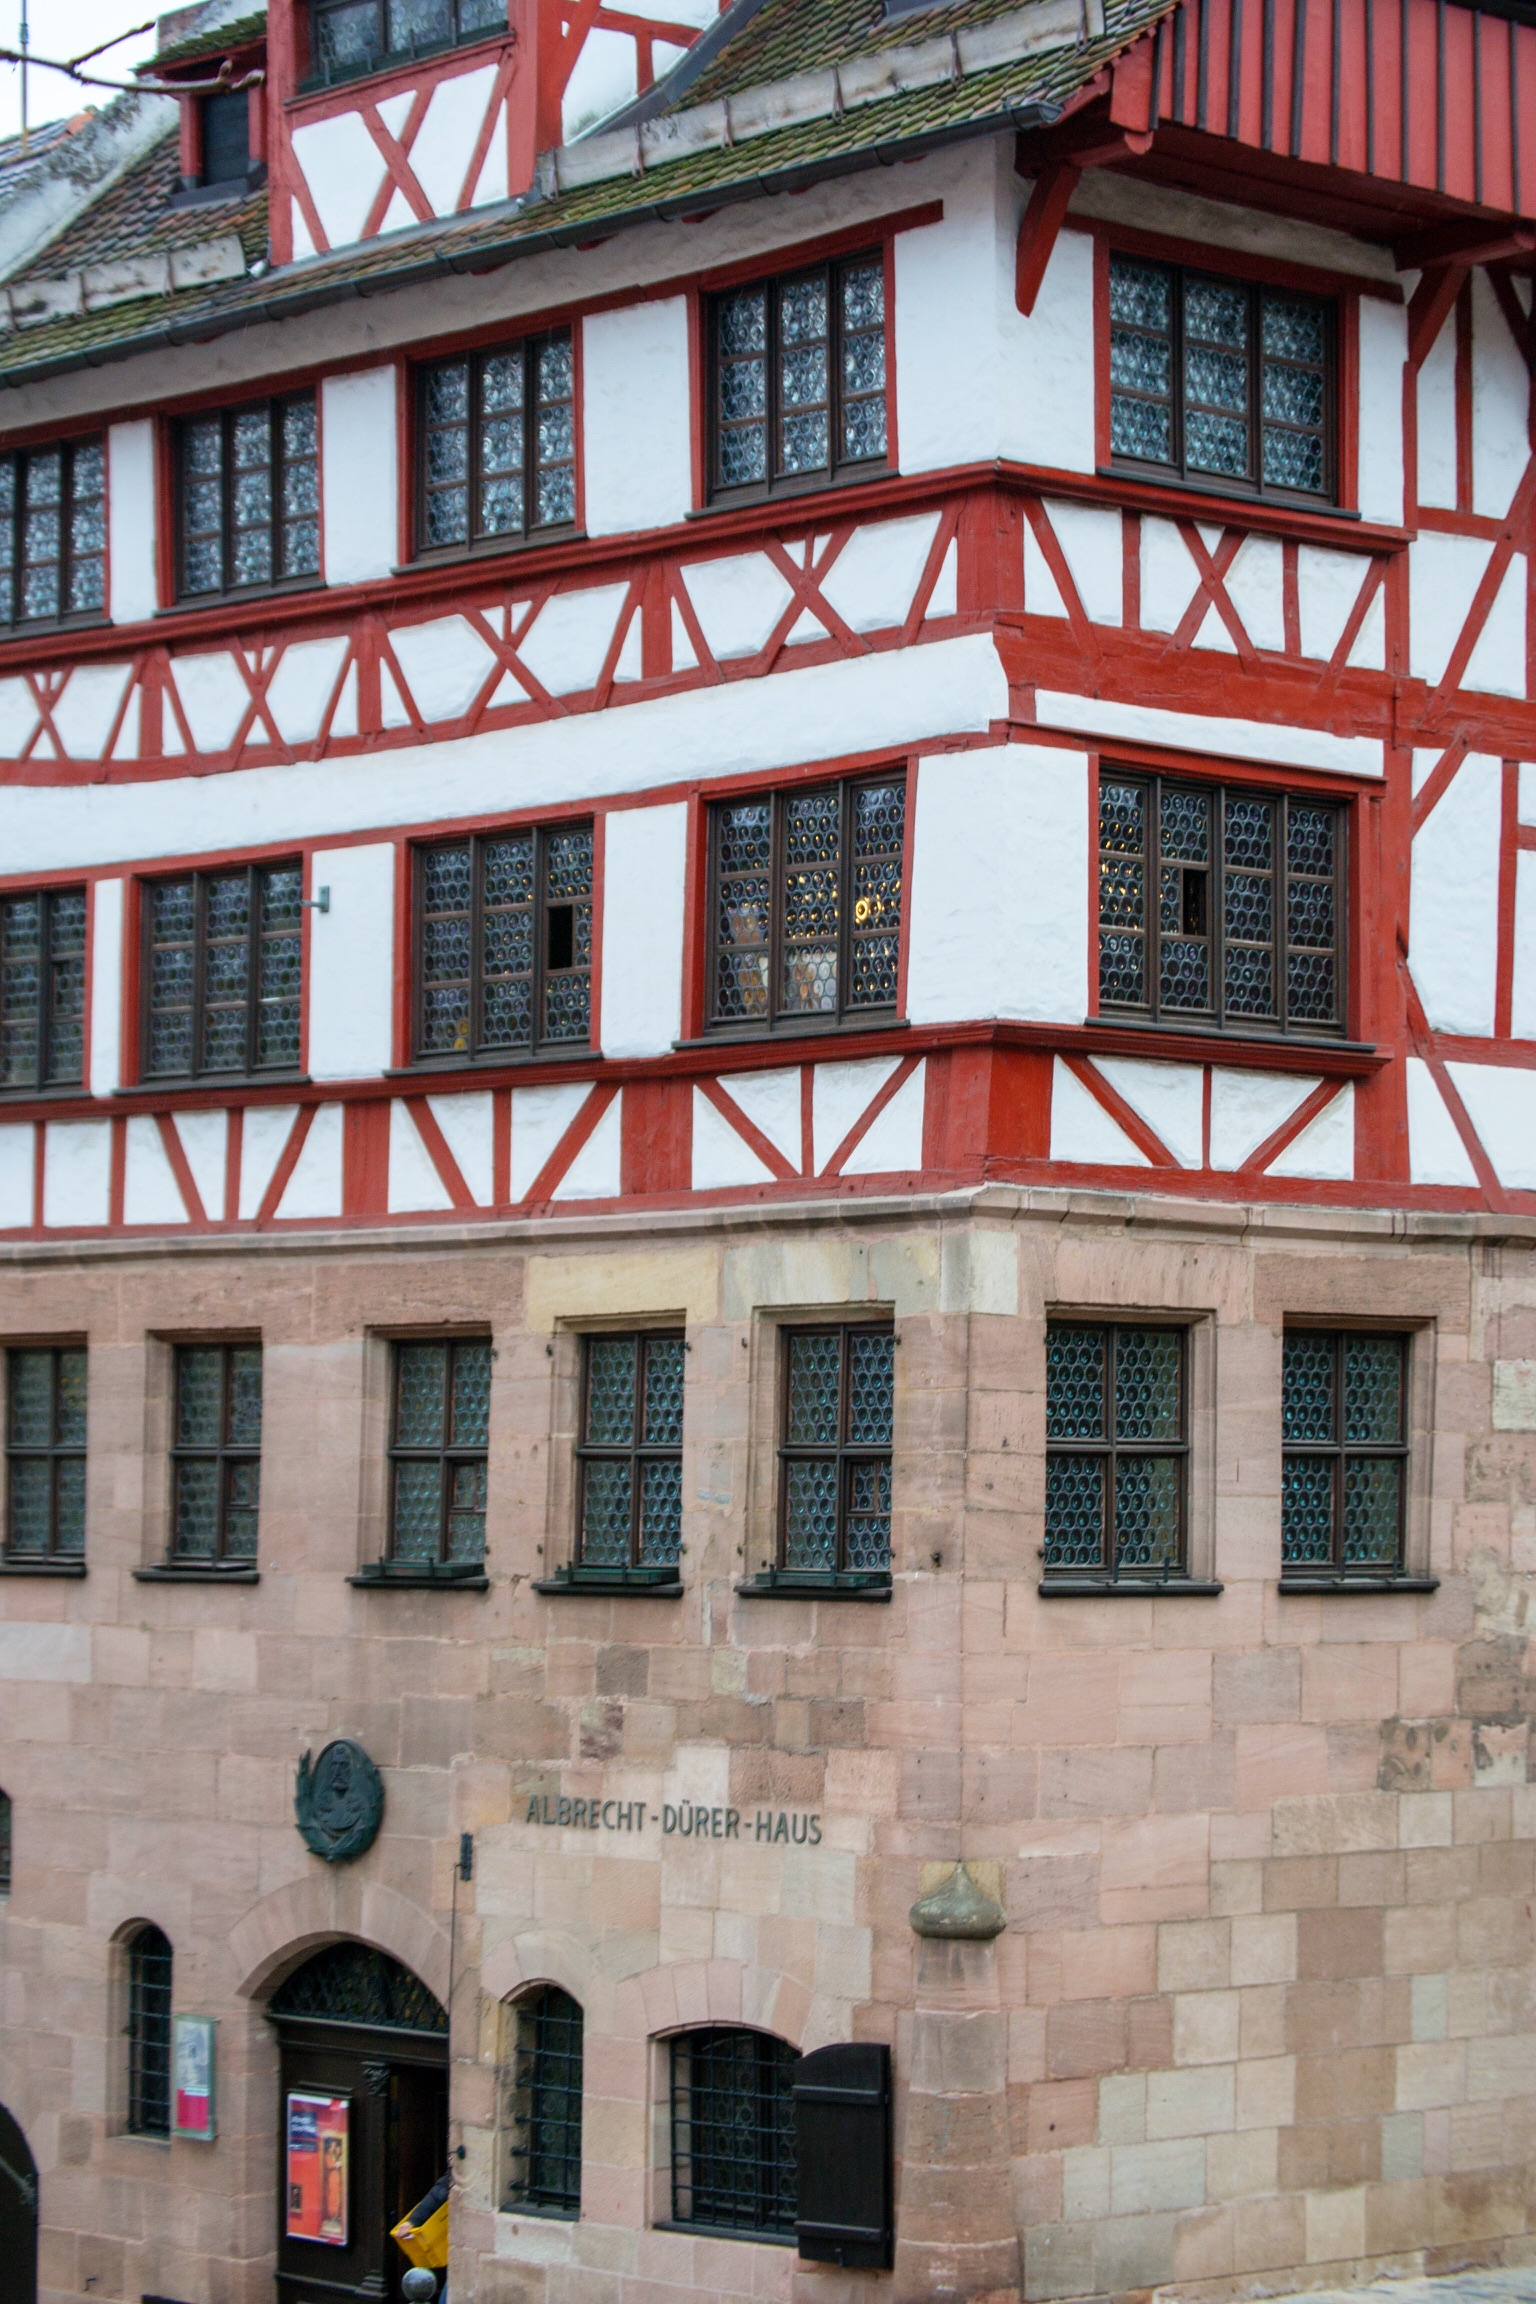 The house of Albrecht Dürer {now a museum} near the Imperial Castle